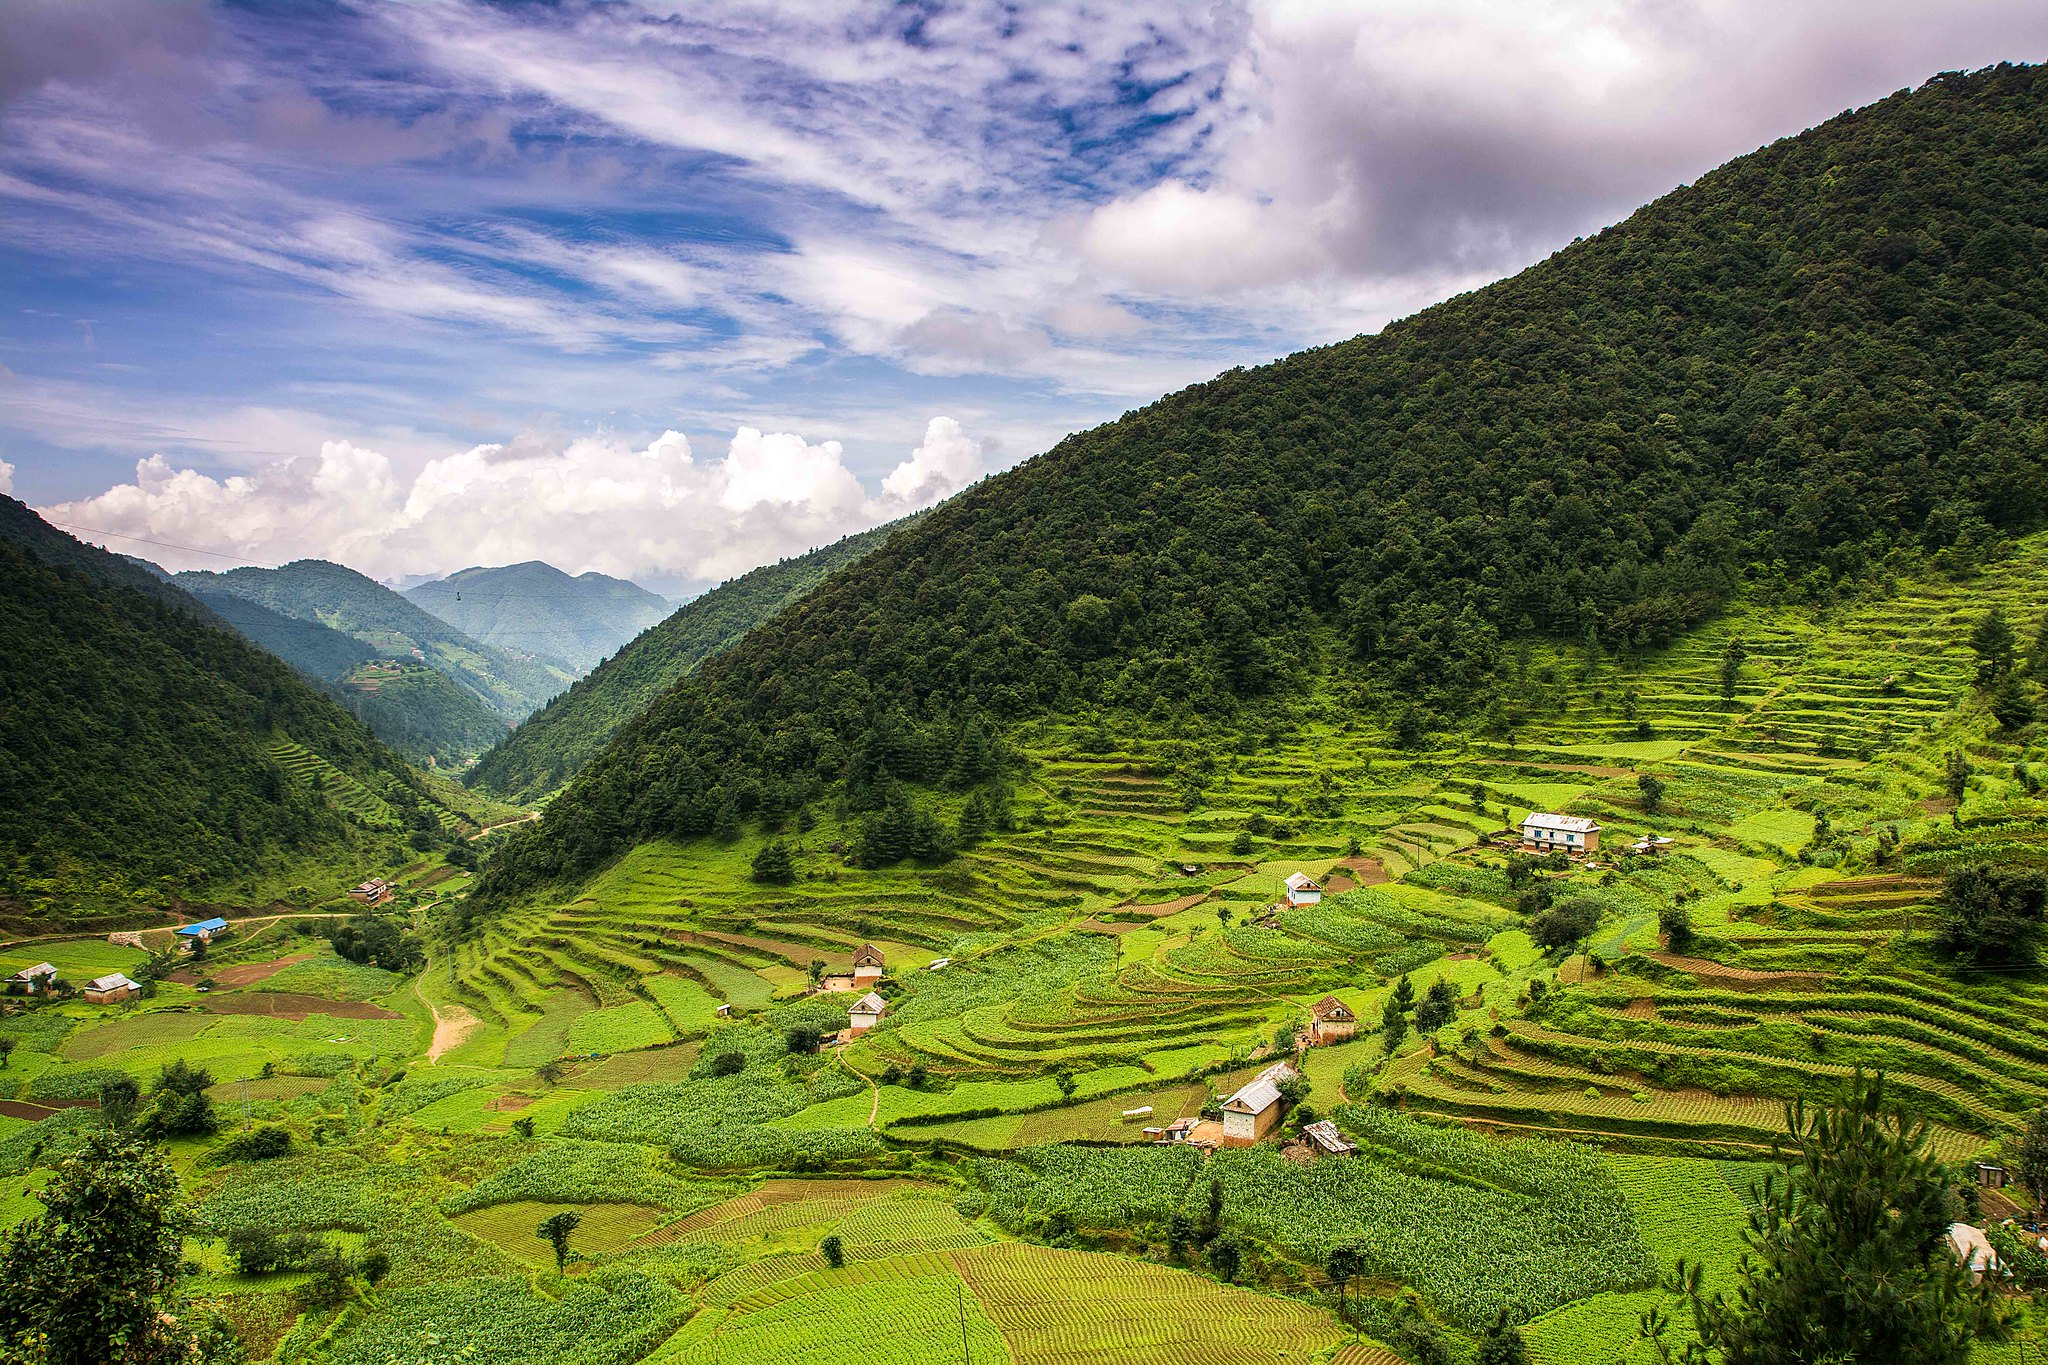 Rice fields in the hills of Nepal. Photo: Sharada Prasad CS